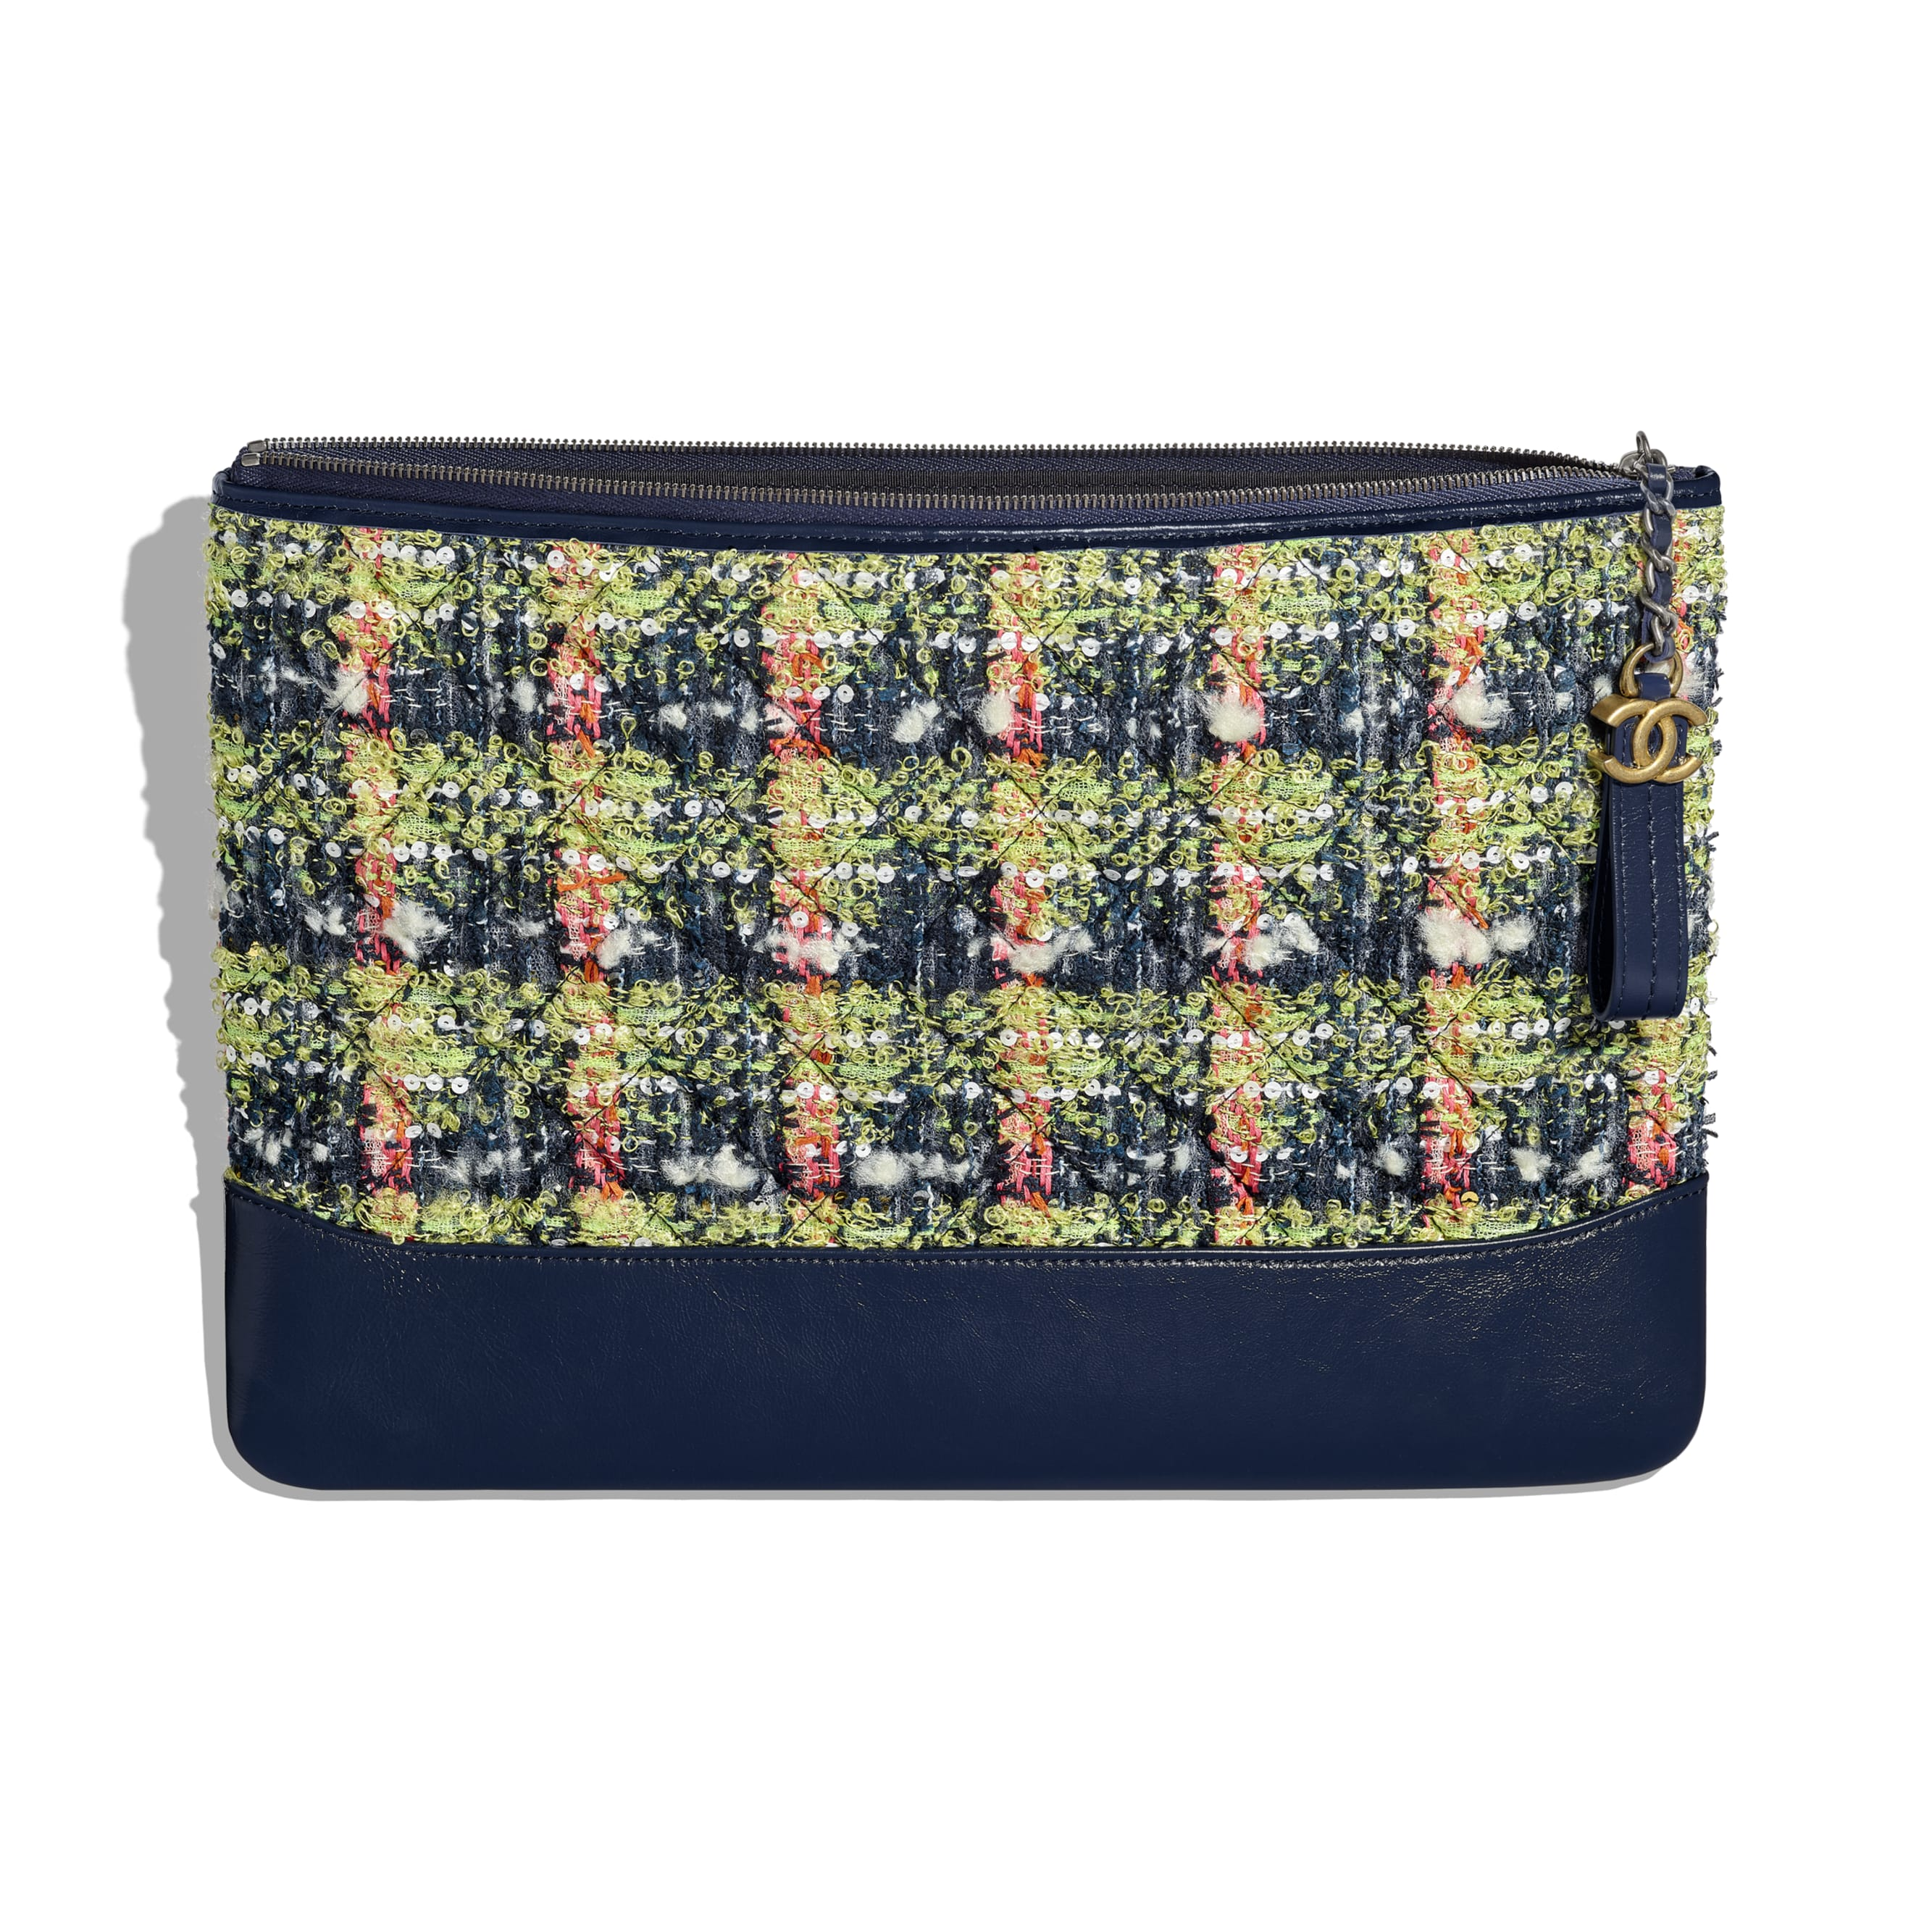 Large Clutch - Navy Blue, Green, Pink & White - Tweed, Calfskin, Gold-Tone, Silver-Tone & Ruthenium-Finish Metal - CHANEL - Other view - see standard sized version